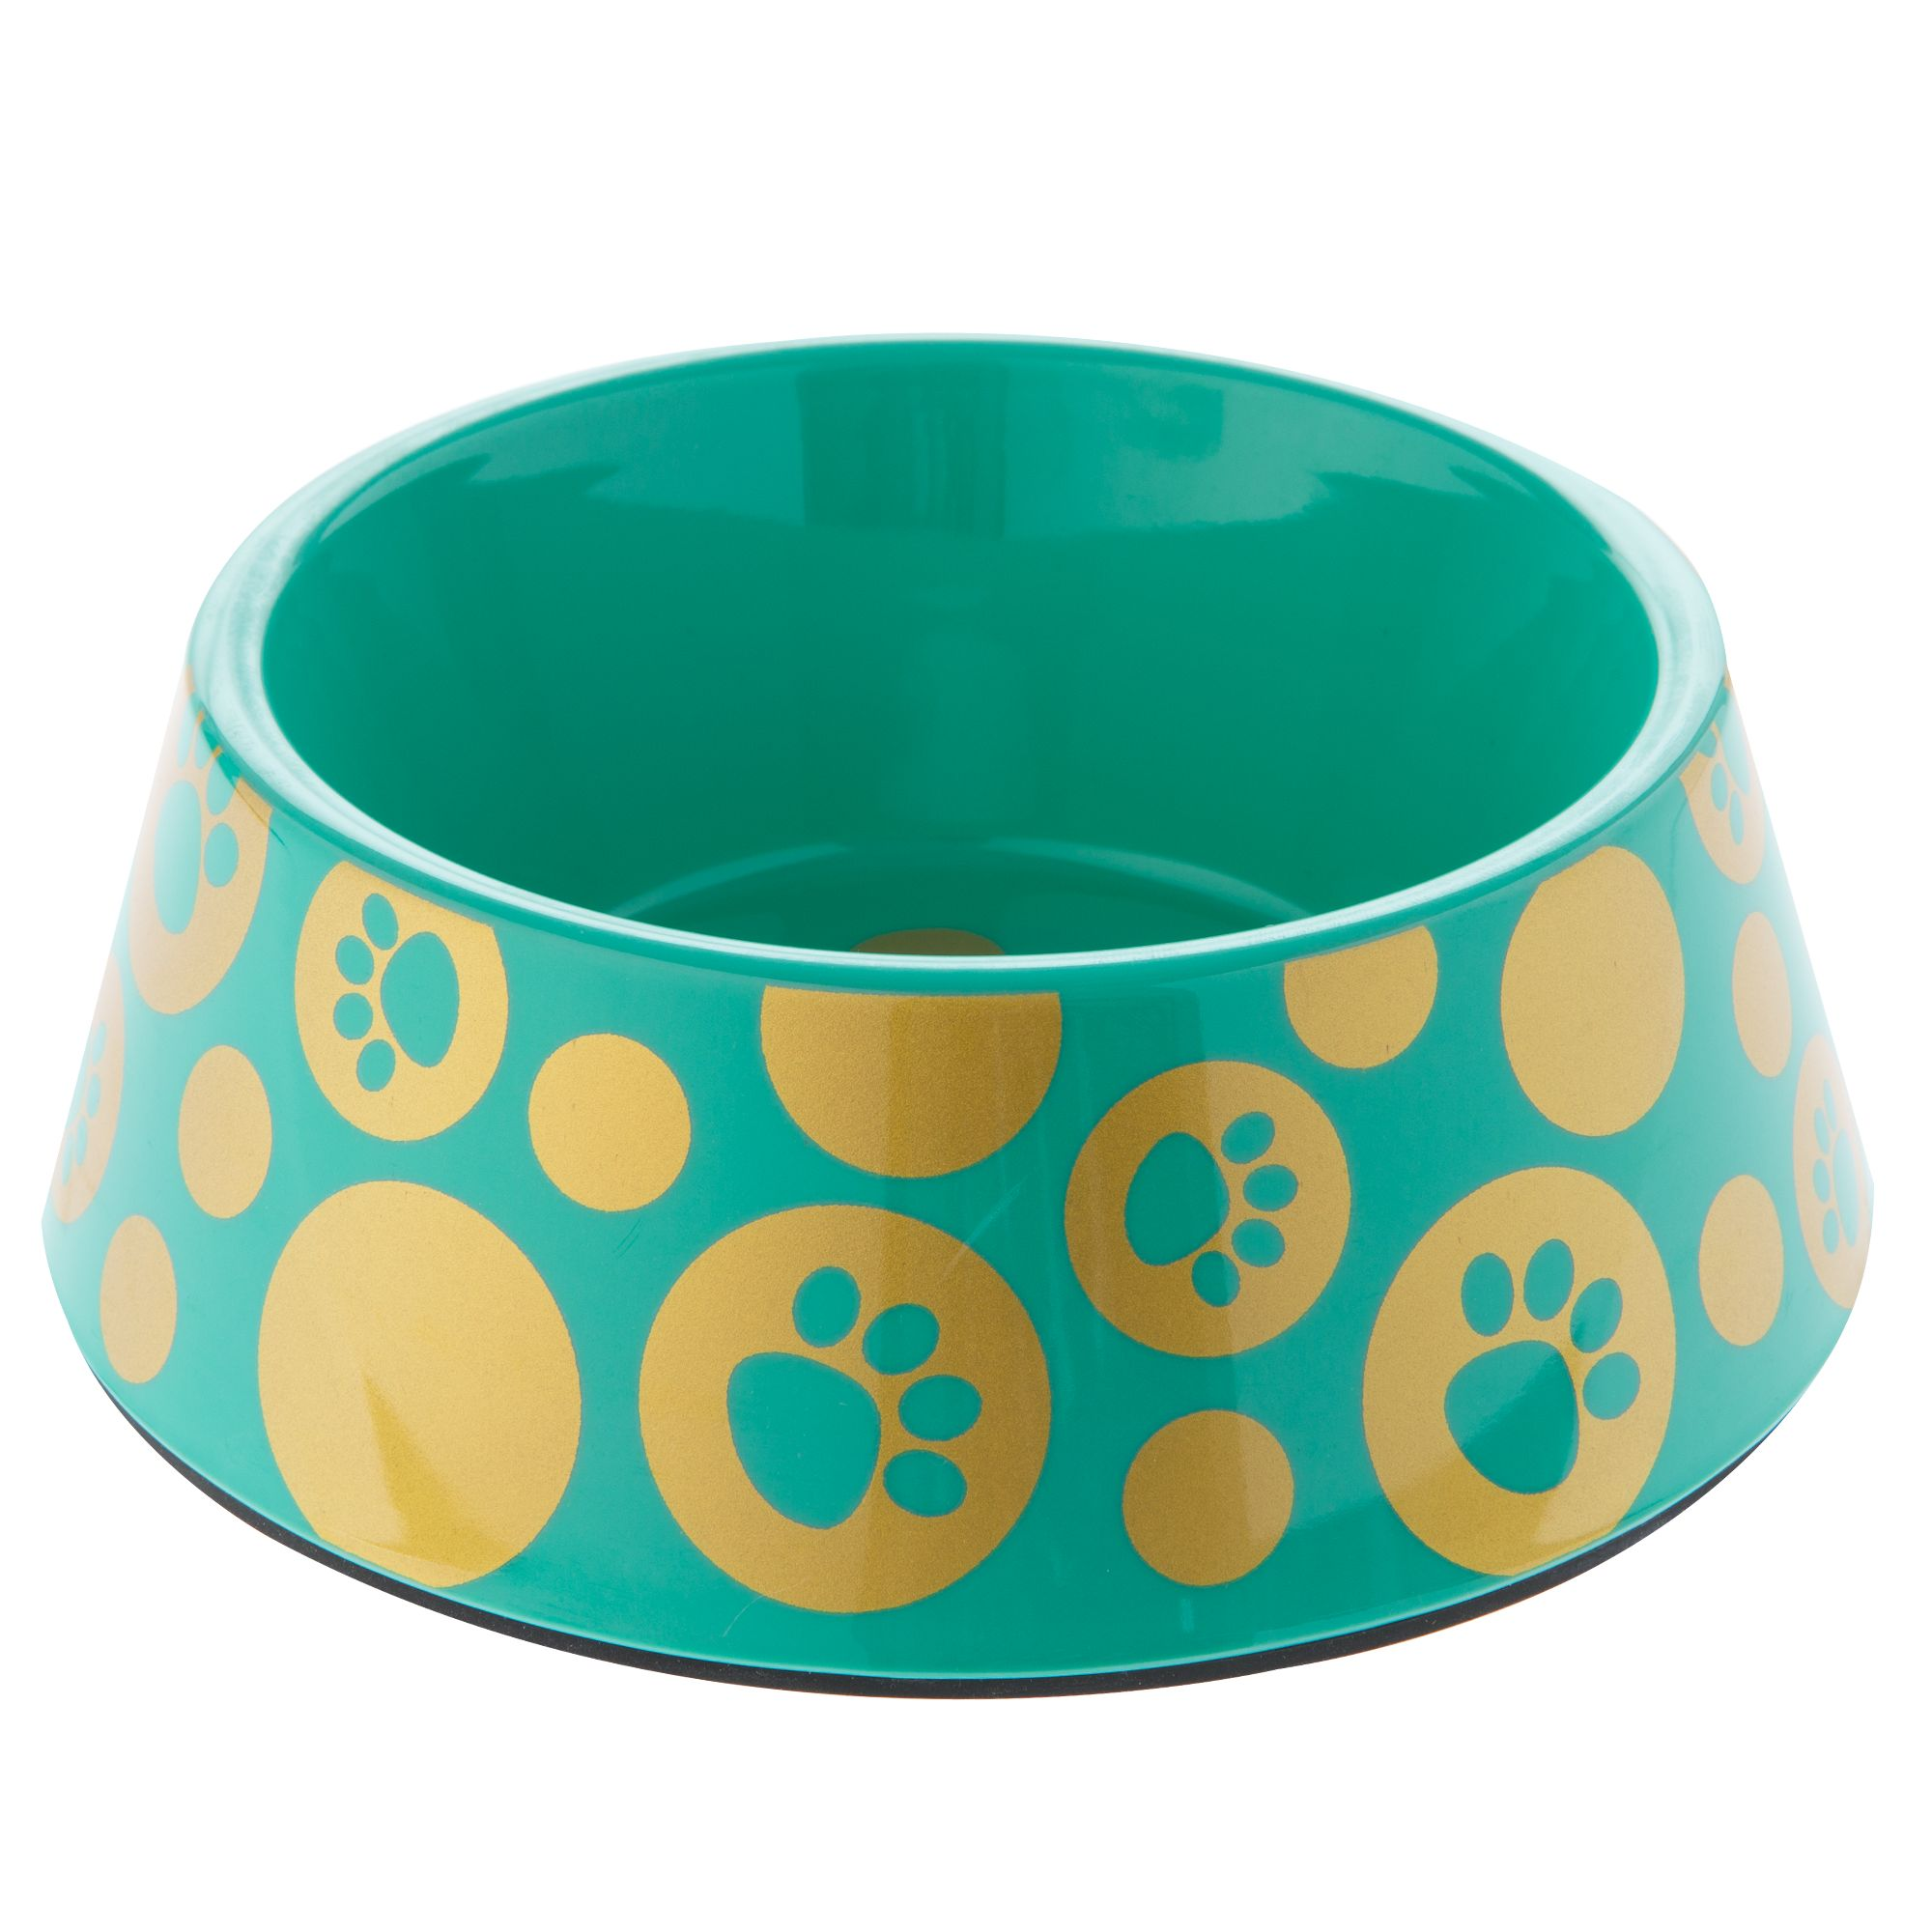 Top Paw® Glitz Paws Dog Bowl size: 1.5 C, Turquoise 5250221